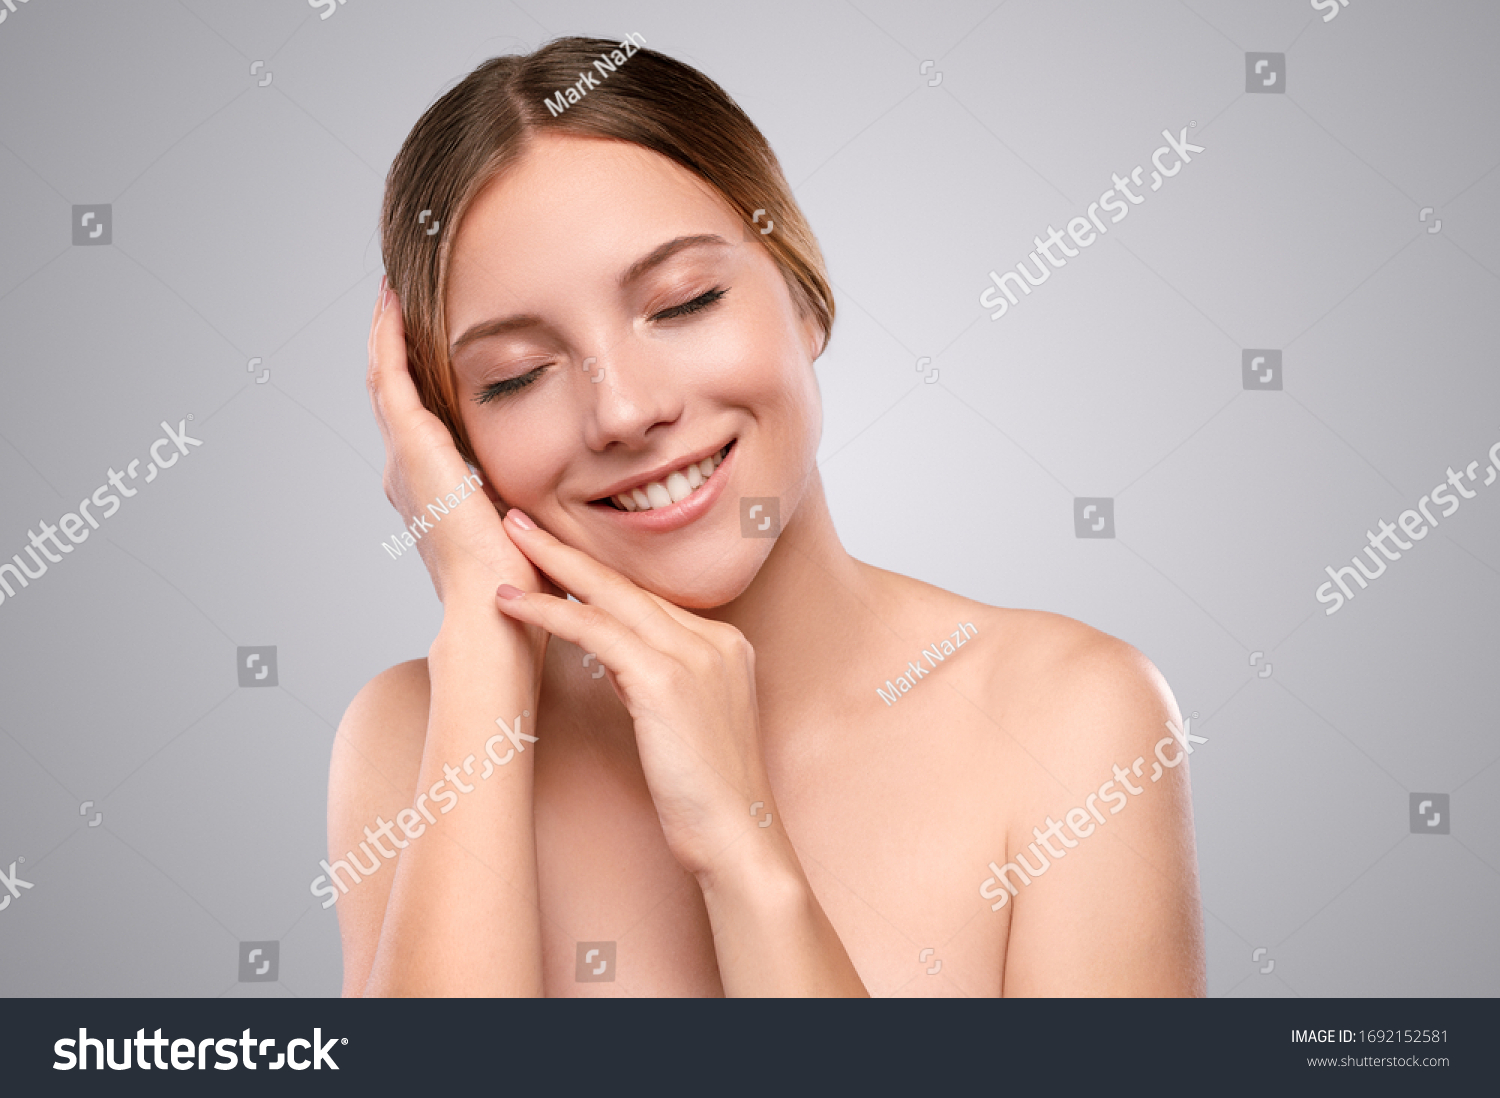 Young fair haired female model with bare shoulders and healthy soft skin touching face and smiling against gray background #1692152581